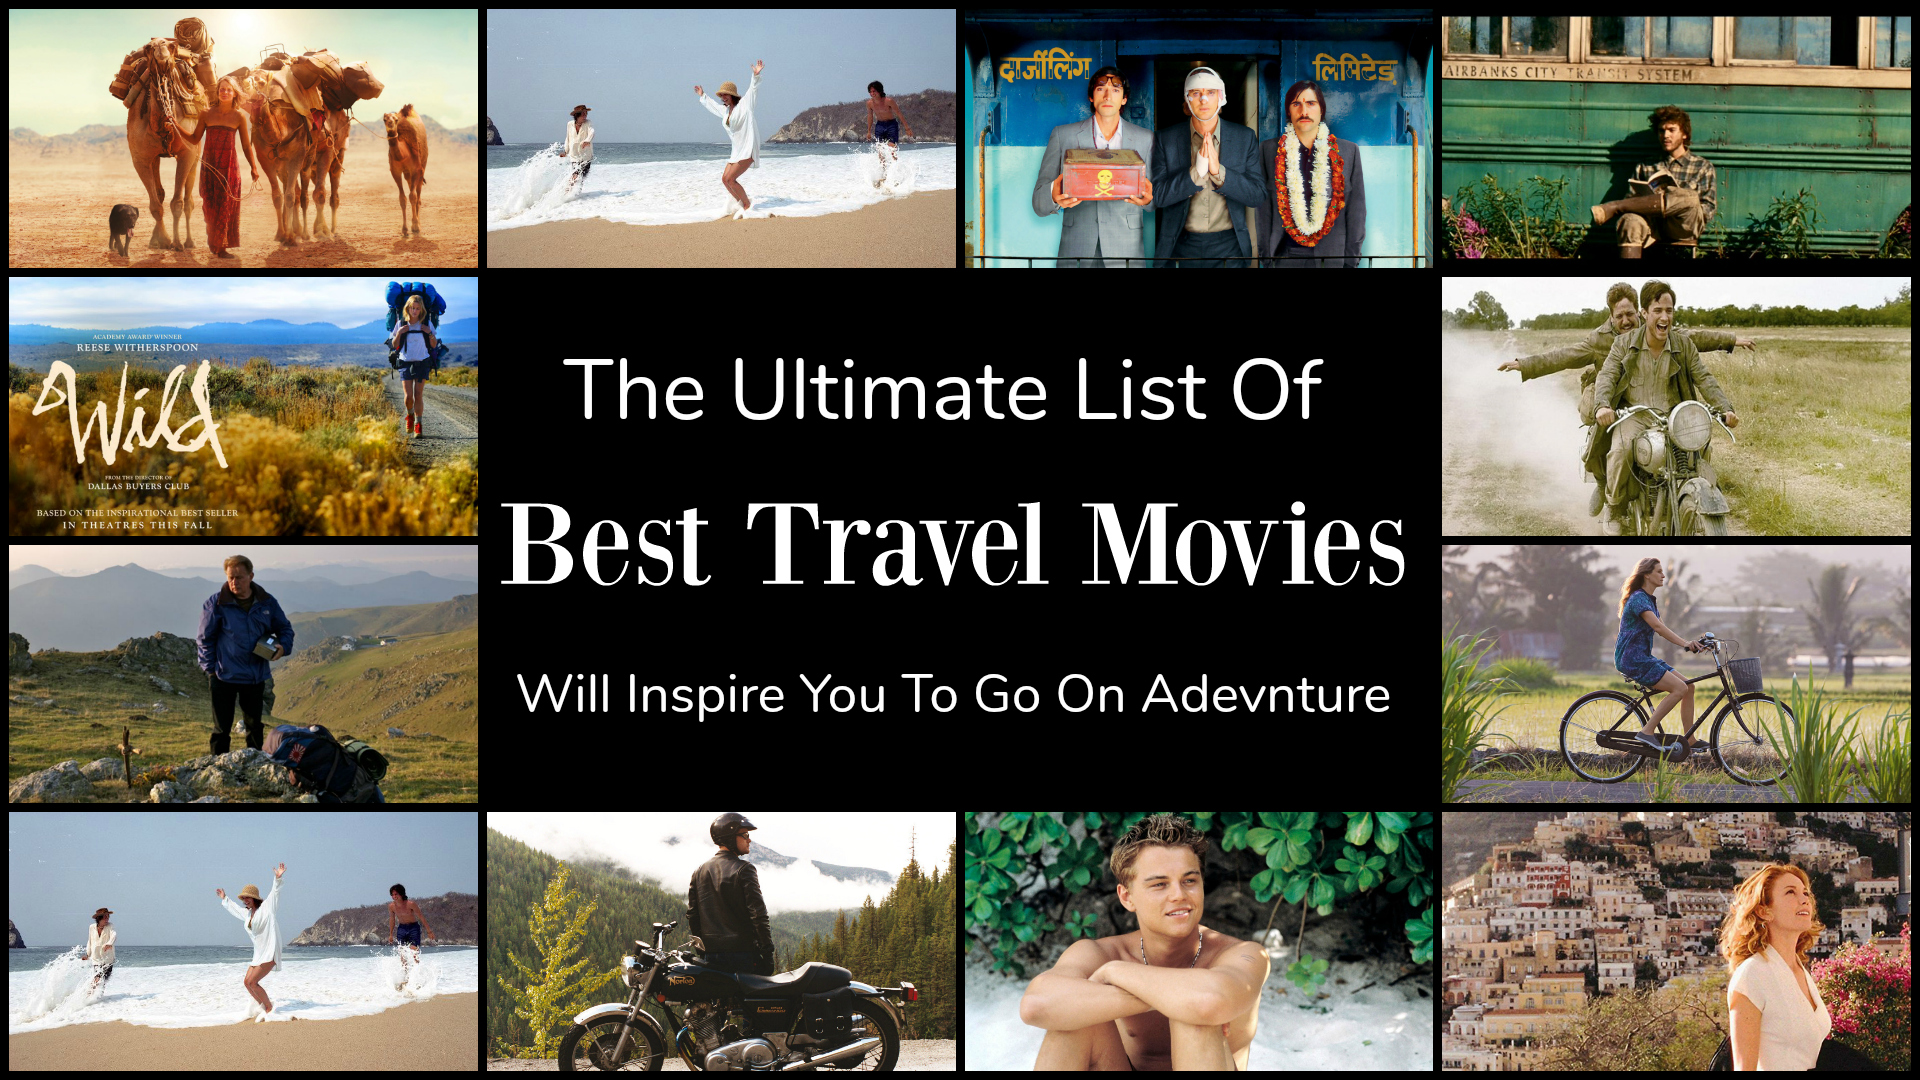 best travel movies list that inspire motivate travel